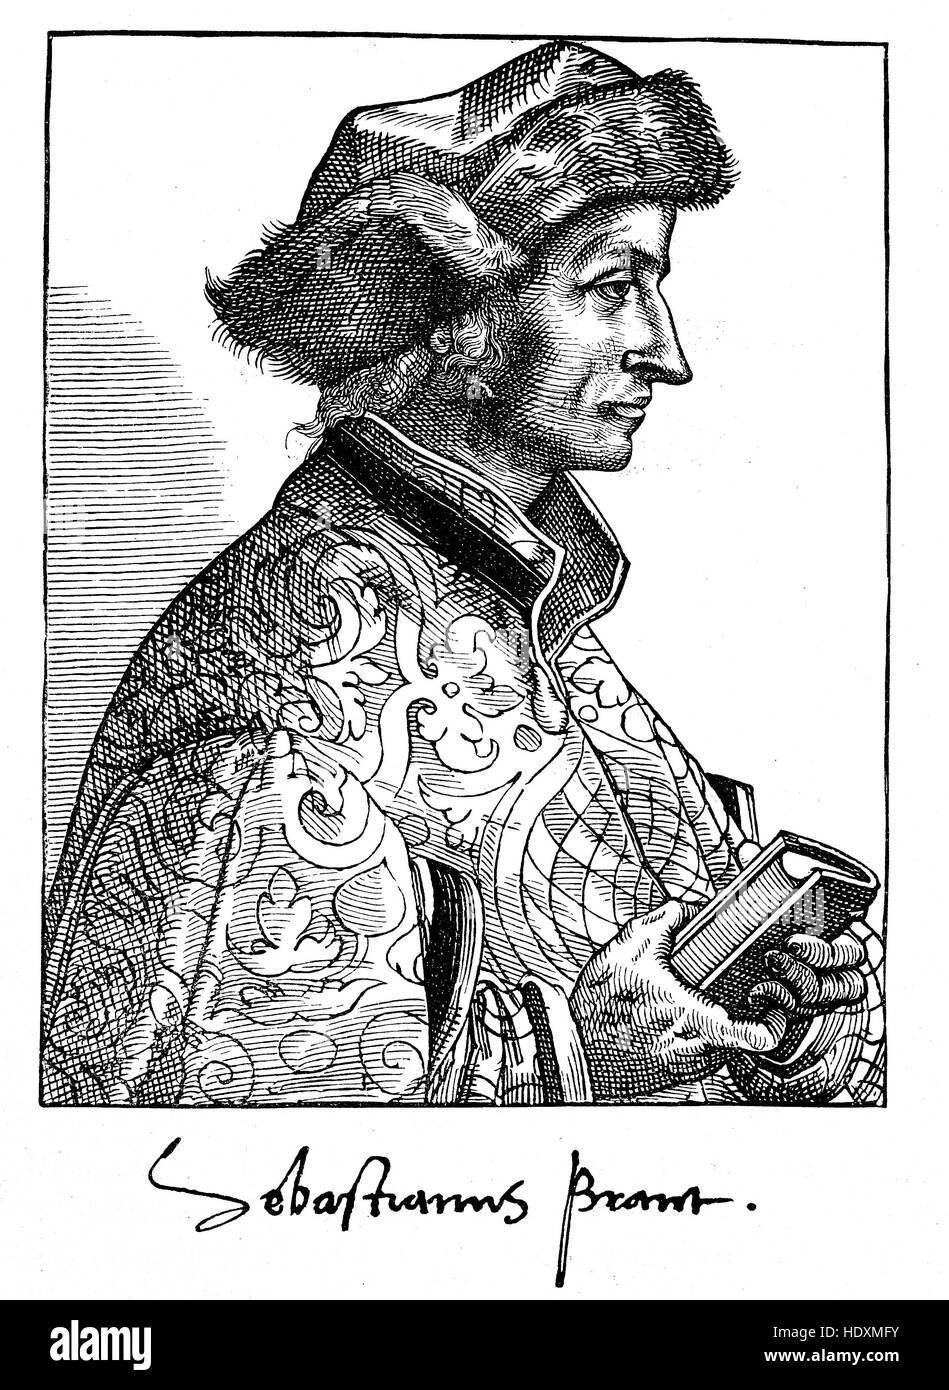 Sebastian Brant, 1457-1521, a German humanist and satirist, woodcut from the